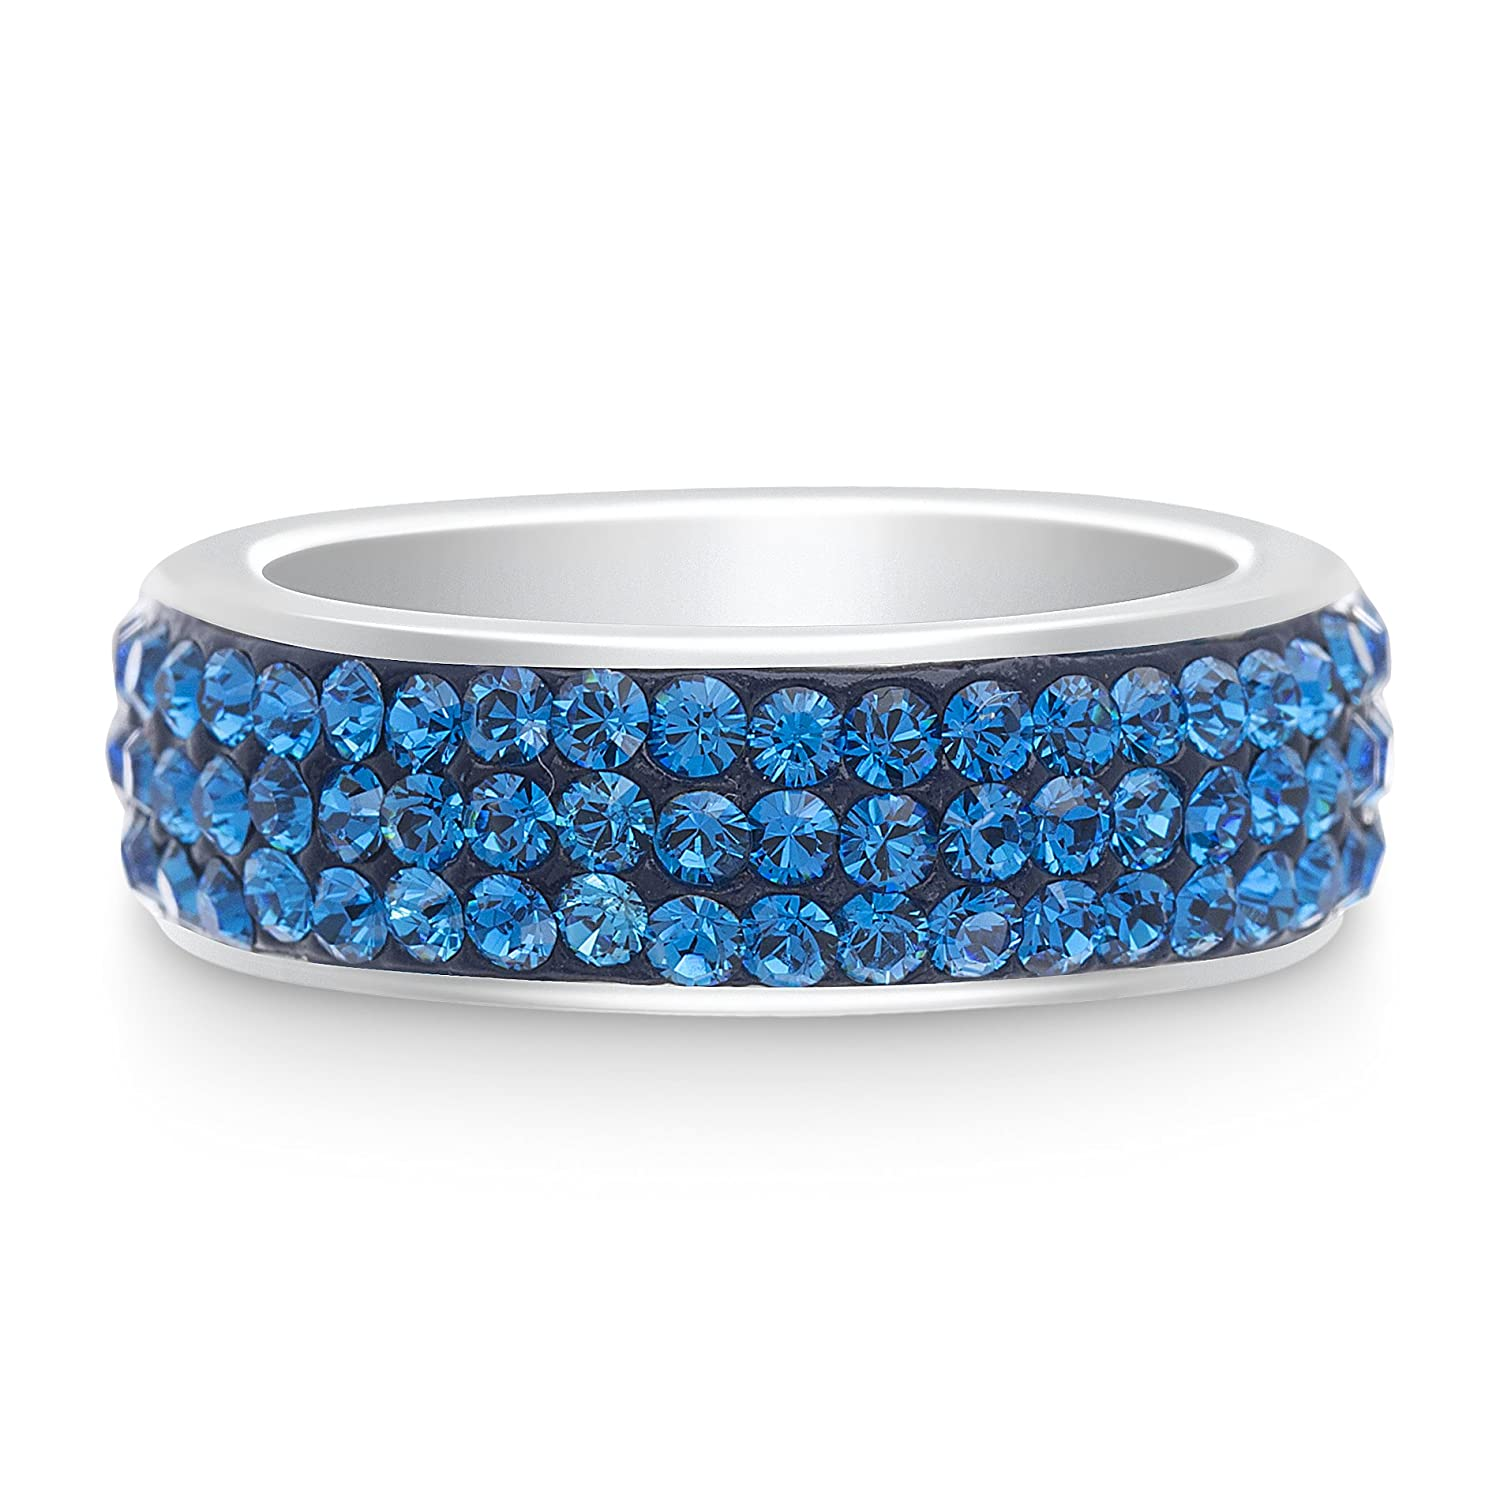 4358c9352 Amazon.com: Devin Rose Triple Row Band Ring for Women Made with Capri Blue Swarovski  Crystal in Rhodium Plated Brass (Size 7): Jewelry